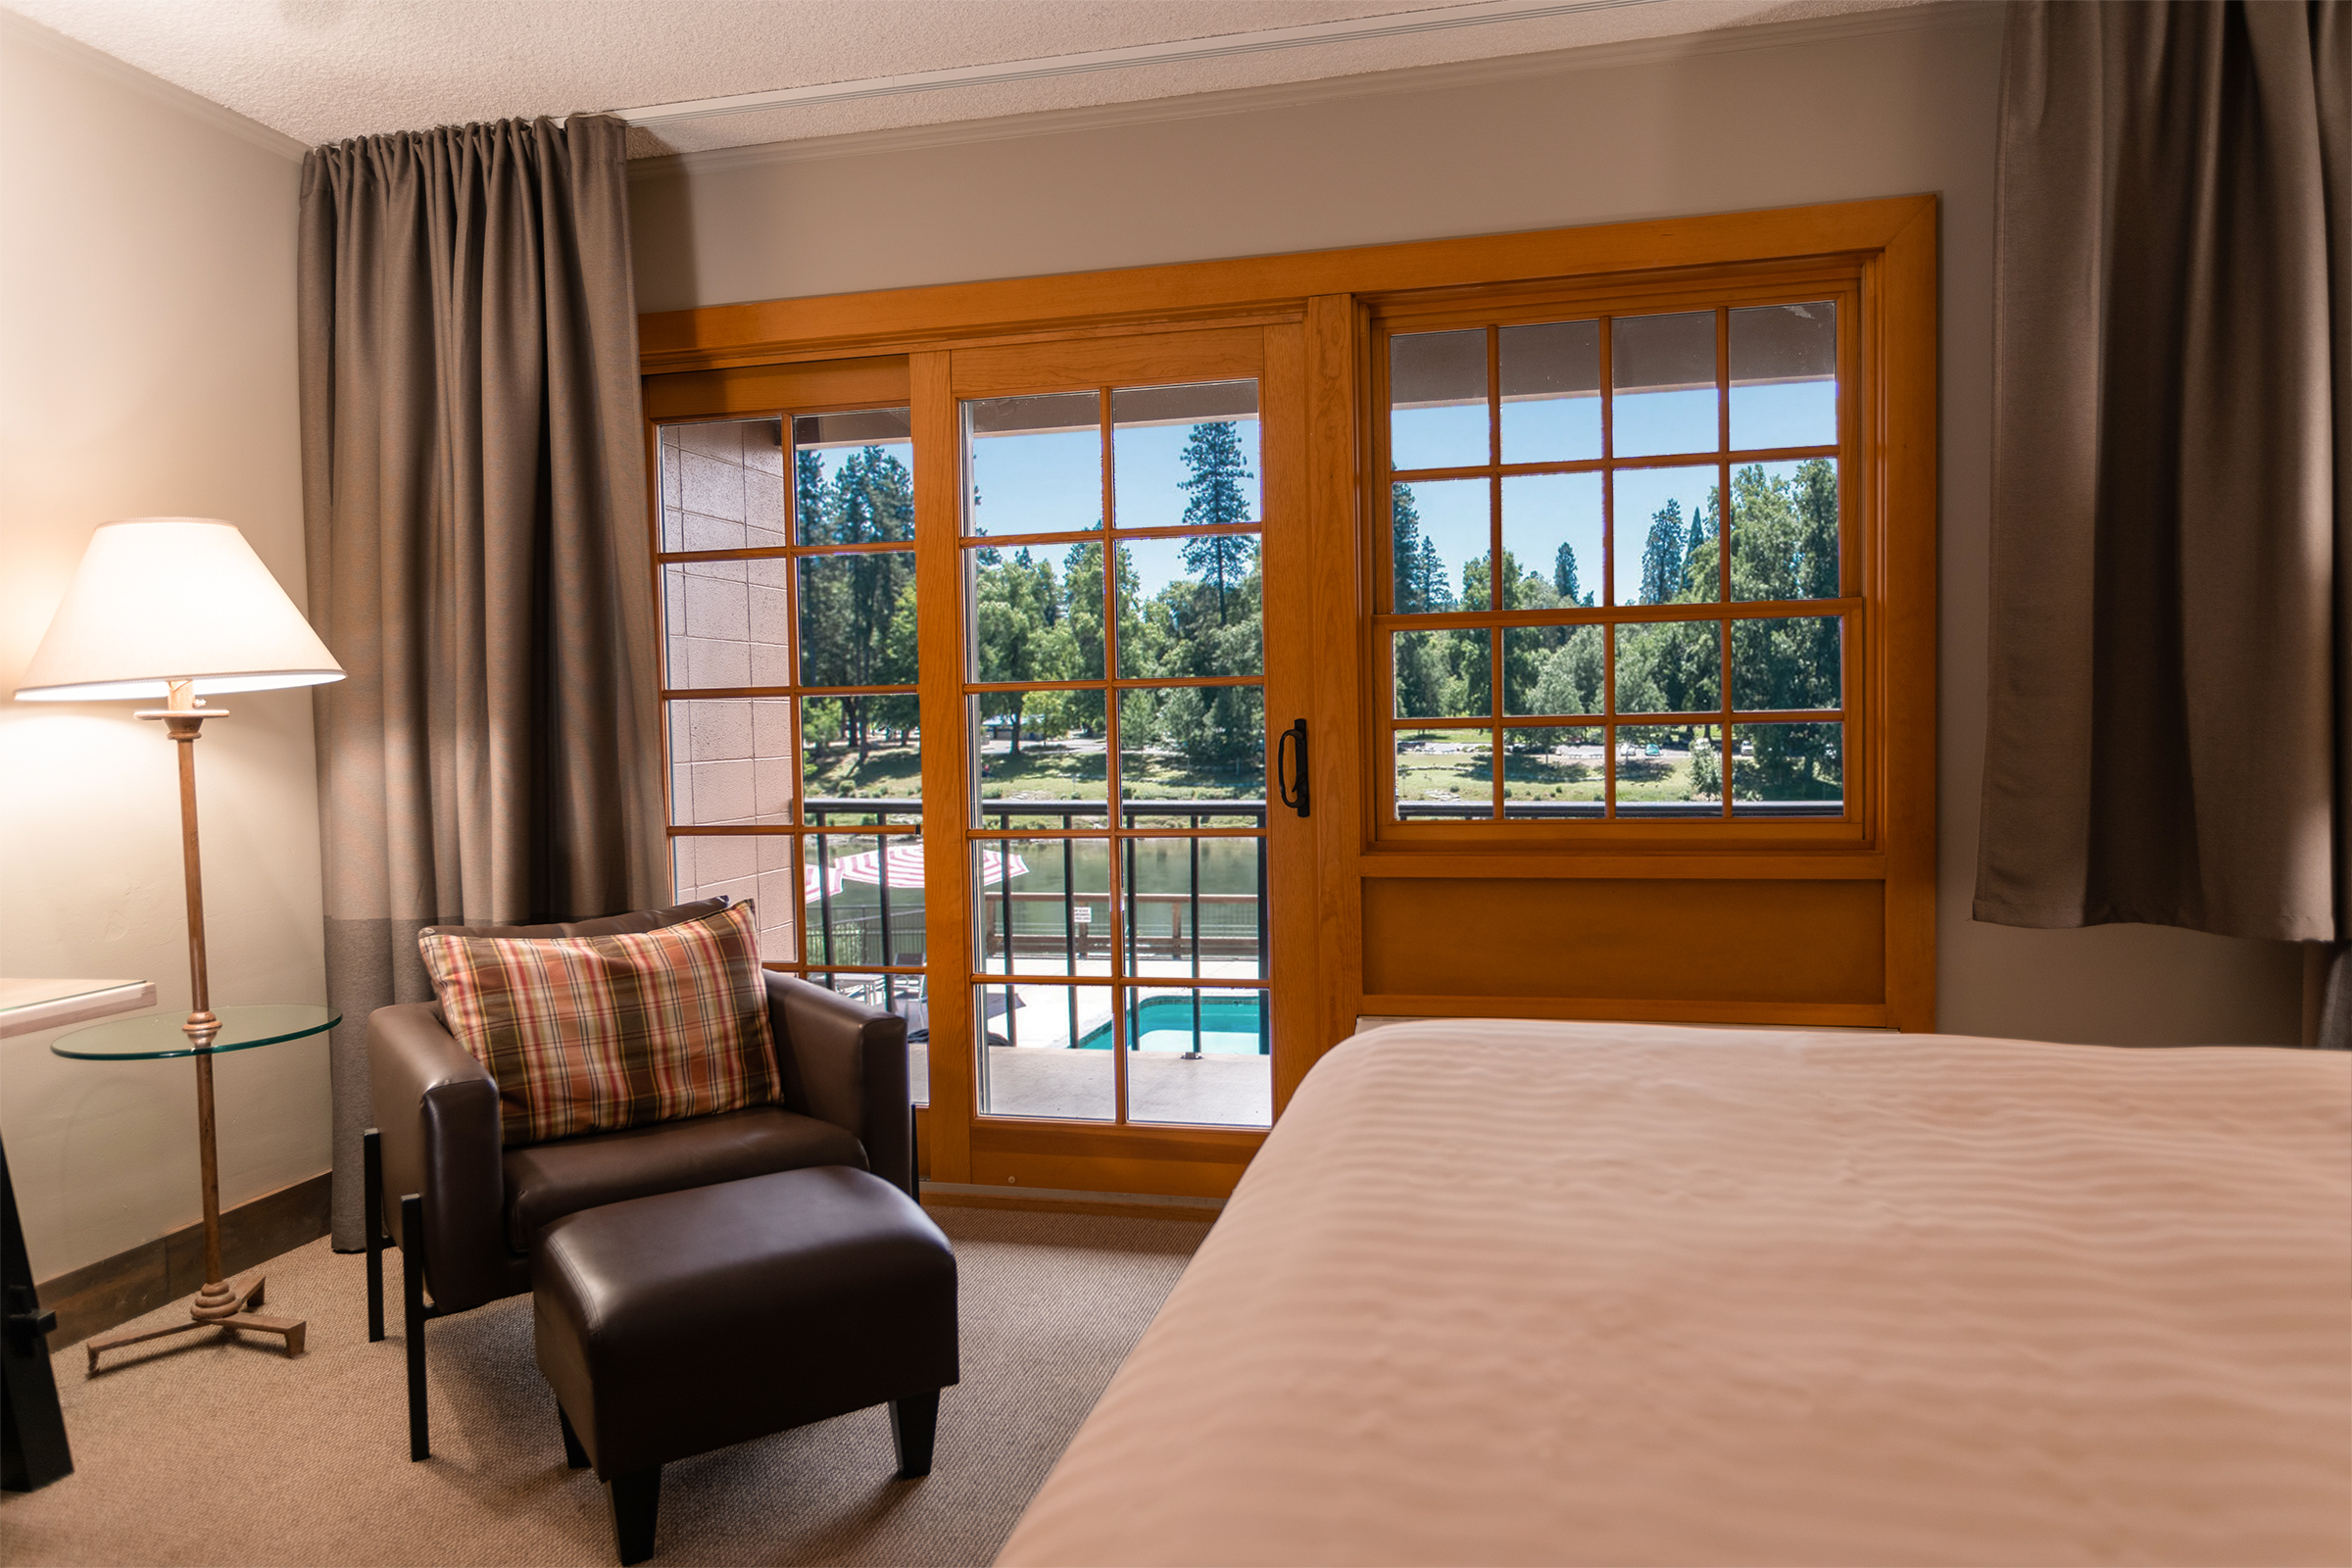 The Jr King bed leather chair and ottoman, and private balcony overlooking the Rogue River and Riverside Park in the distance